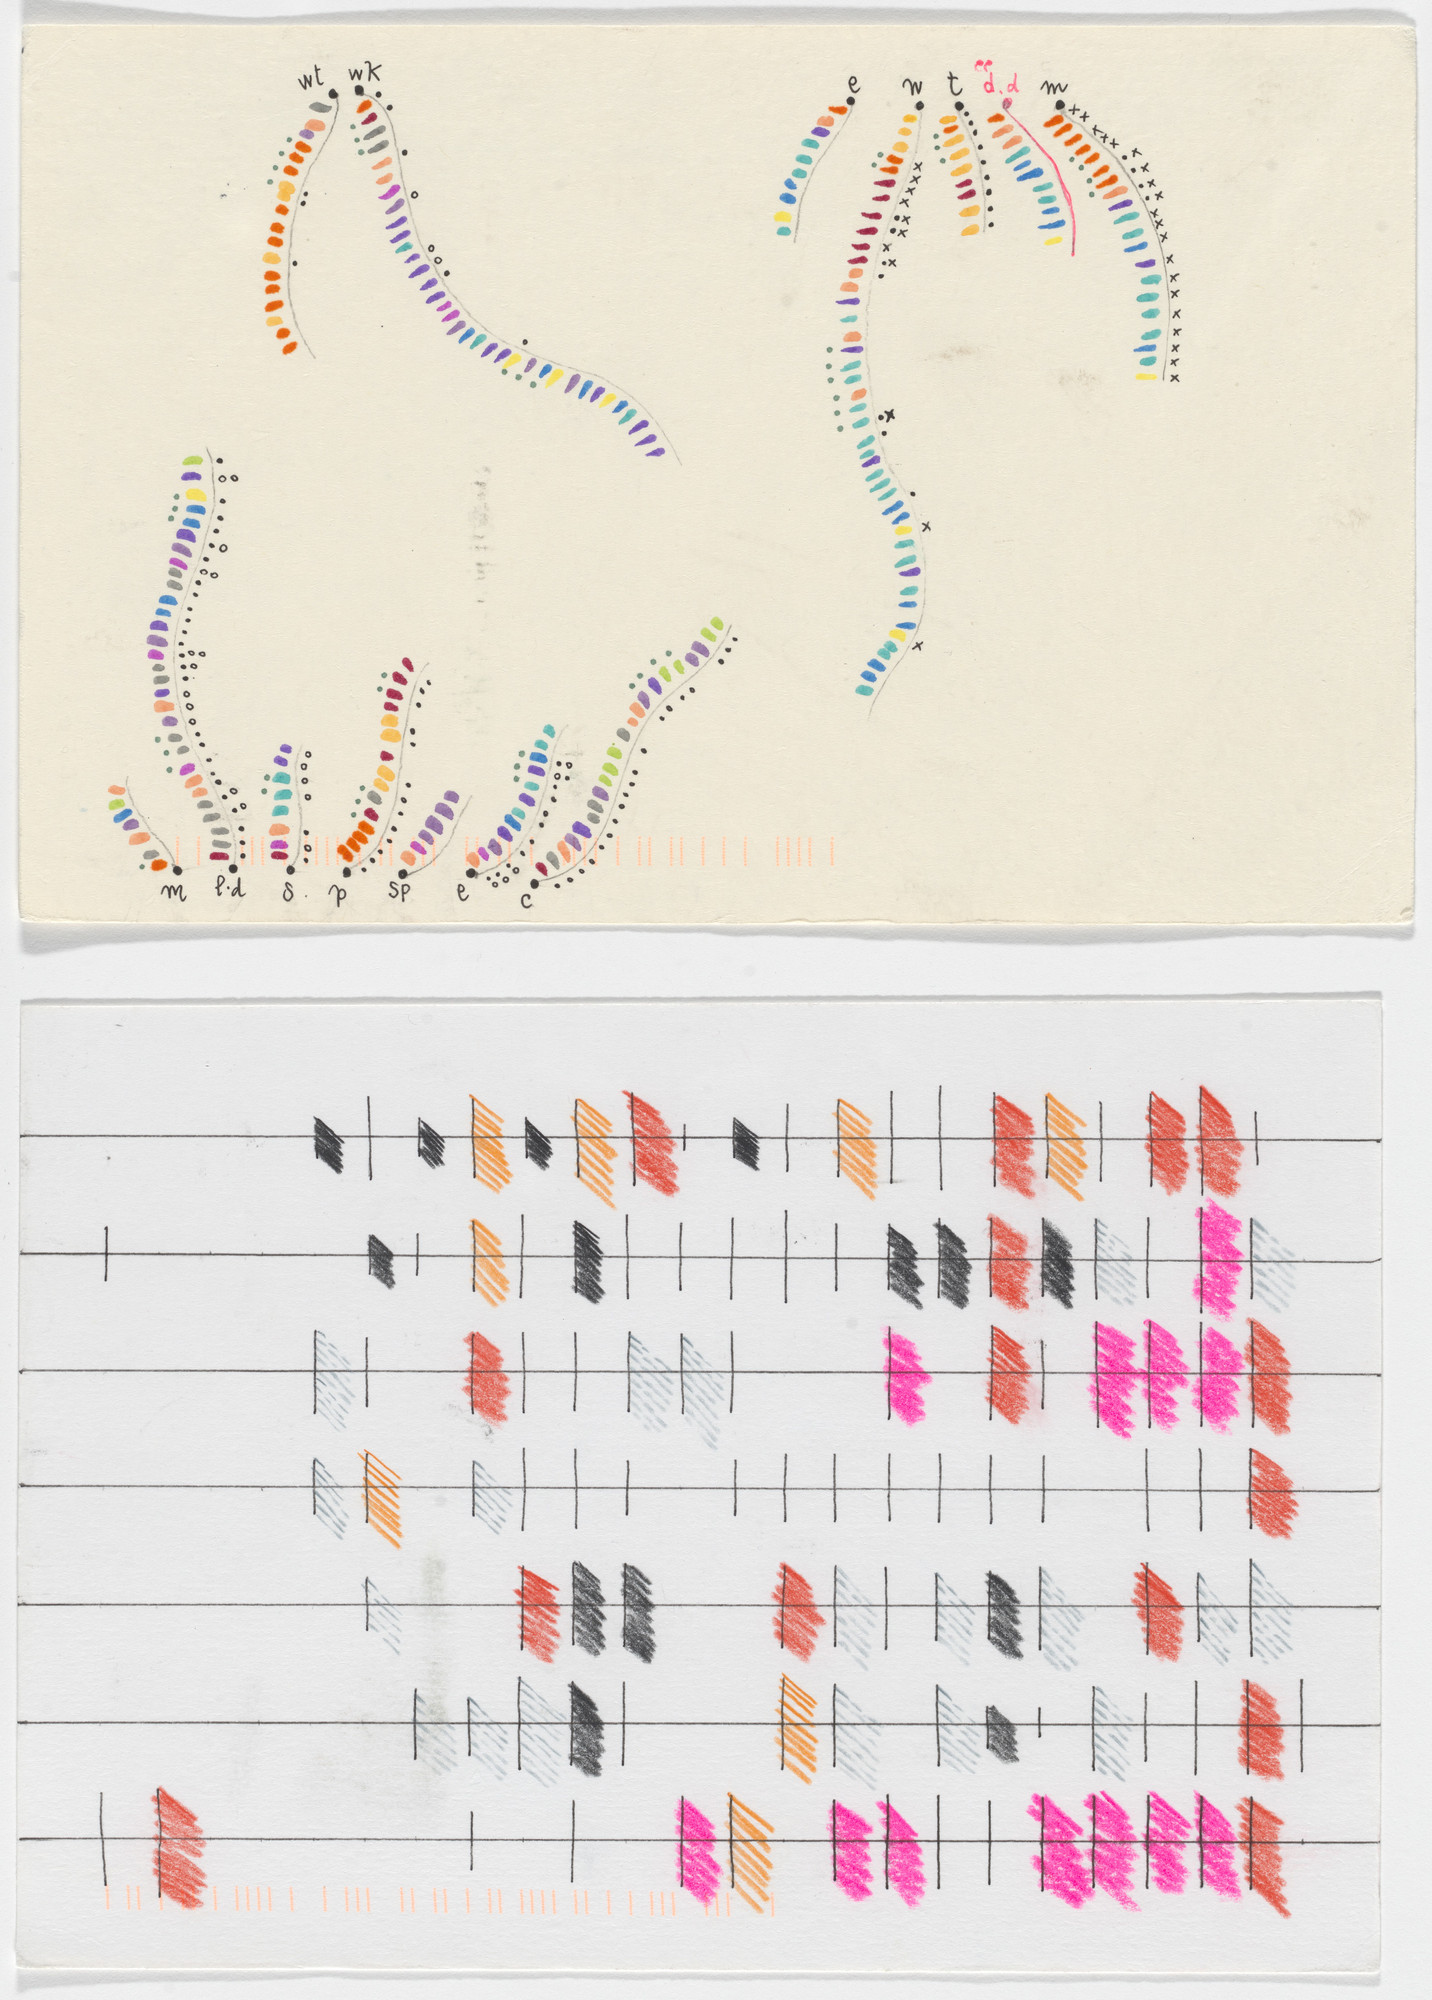 Giorgia Lupi, Stefanie Posavec. Dear Data: Week 11 (Emotional Data / A Week of Emotions/Feelings). 2014